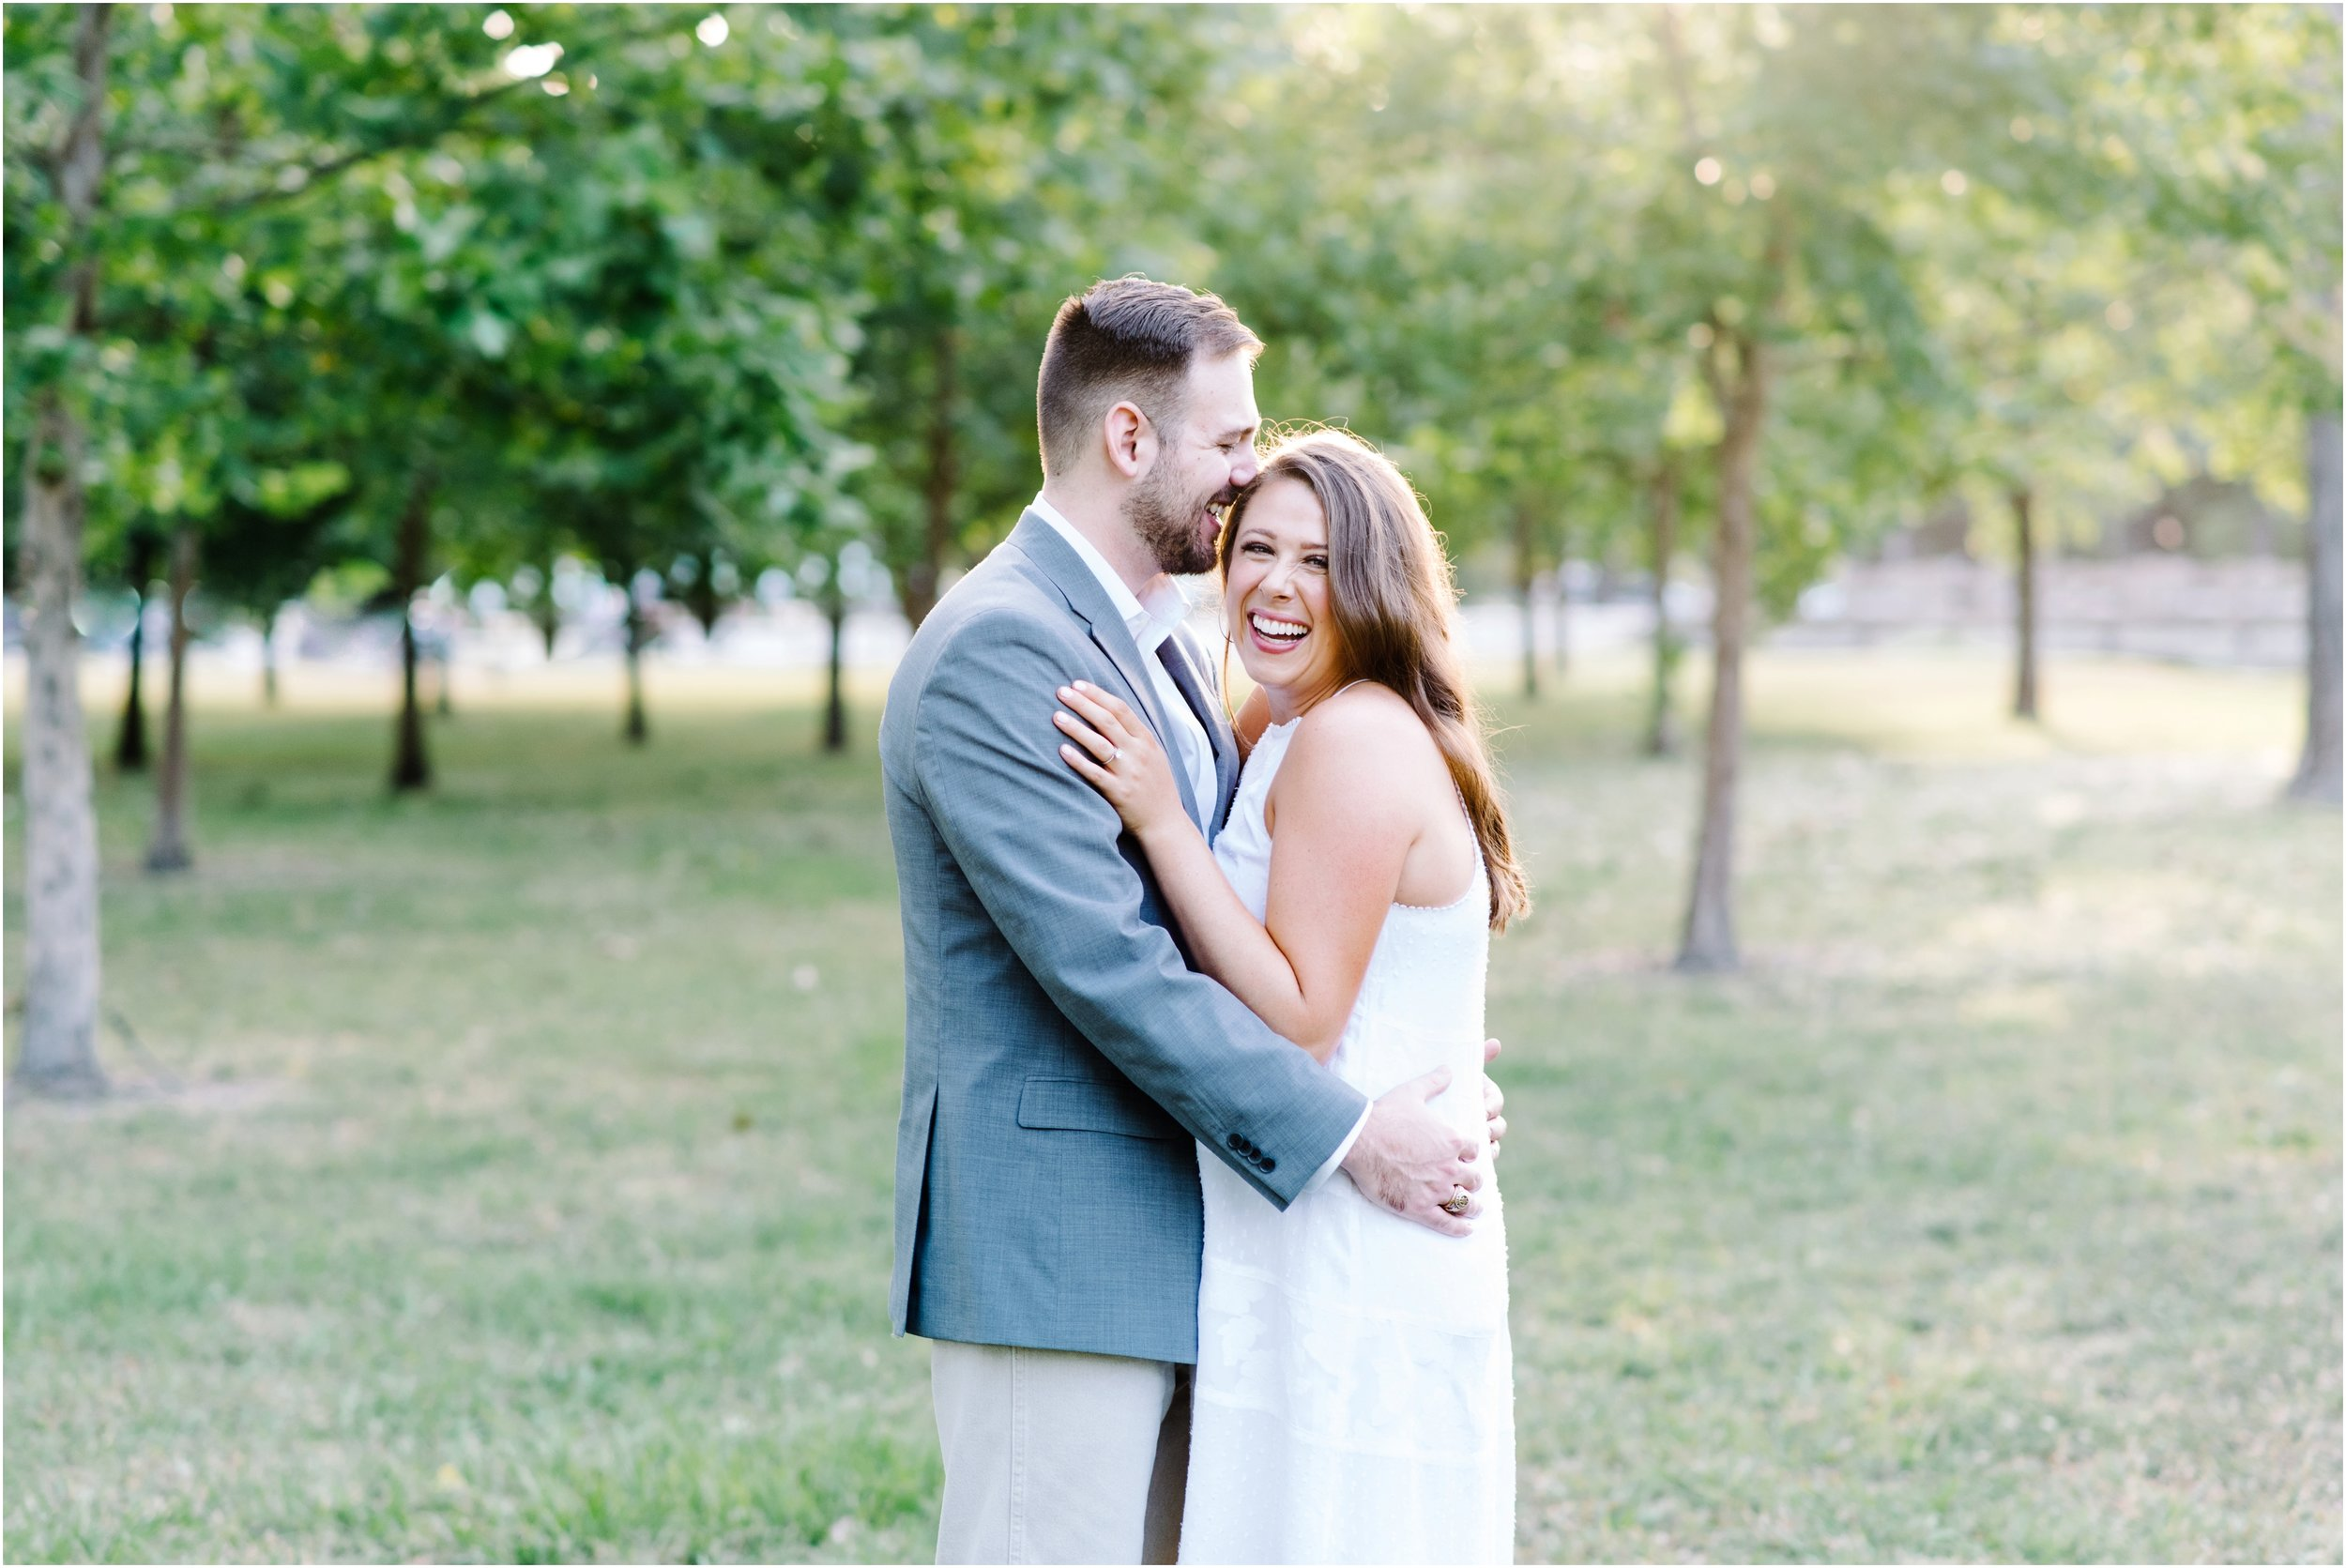 dallasweddingphotographer_texasweddingphotographer_mattandjulieweddings_modernfortworth_fortworthweddingphotographer_0891.jpg